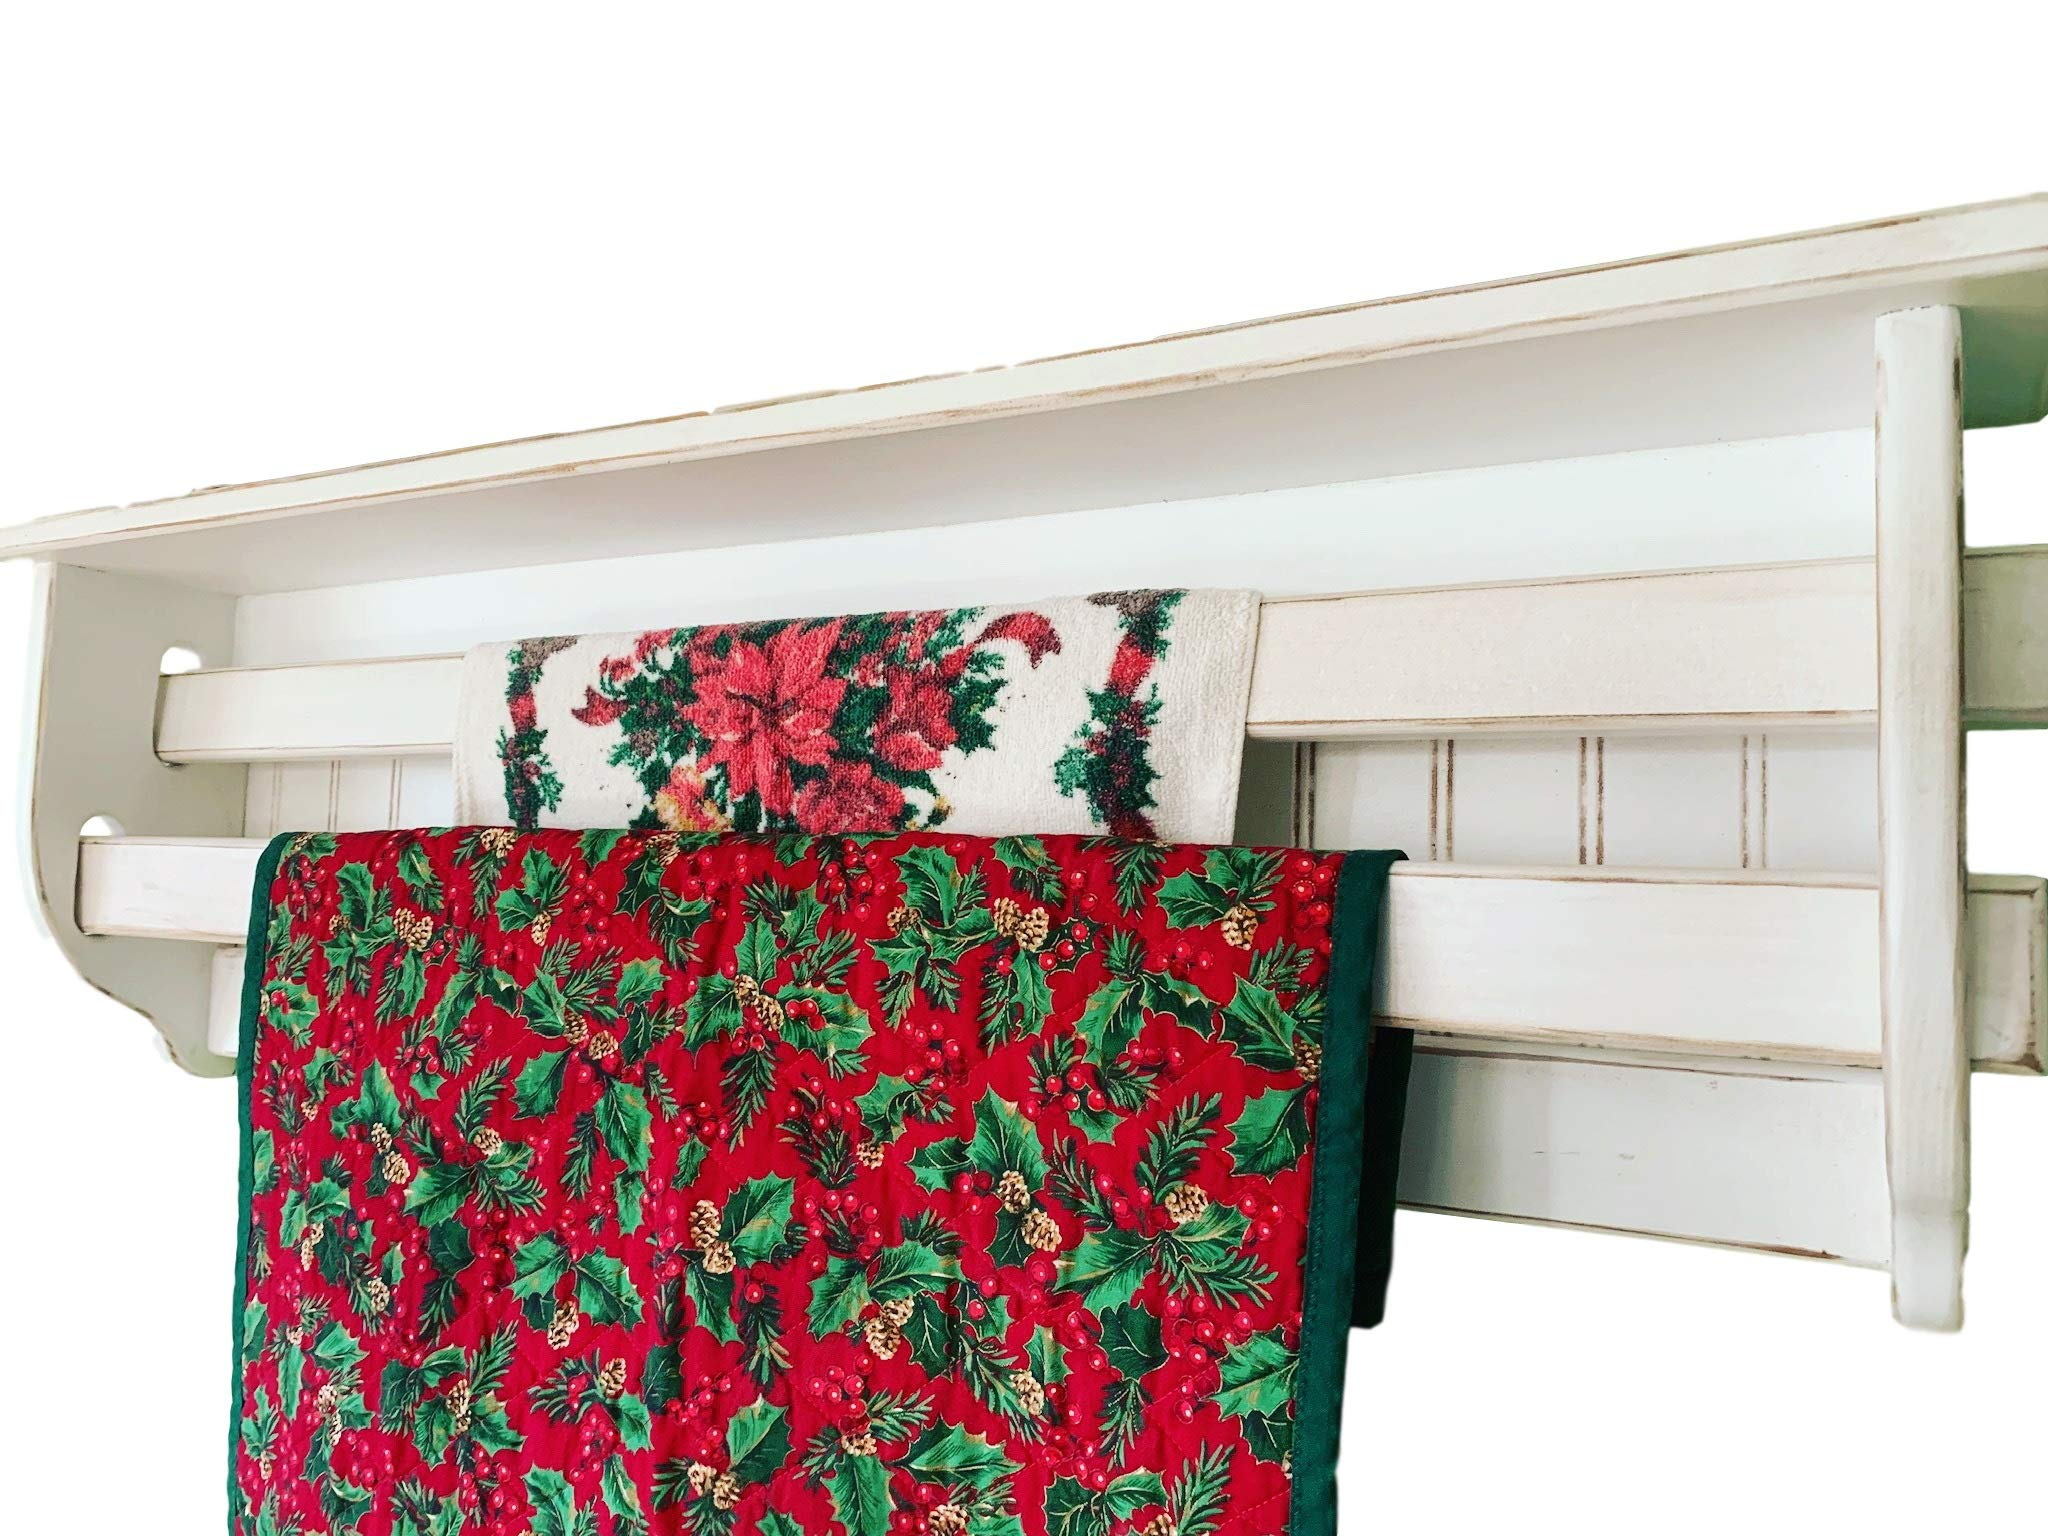 Quilt Rack for the wall, Double Bar Quilt Rack Wall Shelf, Quilt Display Shelf, Rustic Quilt Rack | Quilt Rack for 2 Quilts by Appletree Woodcrafts